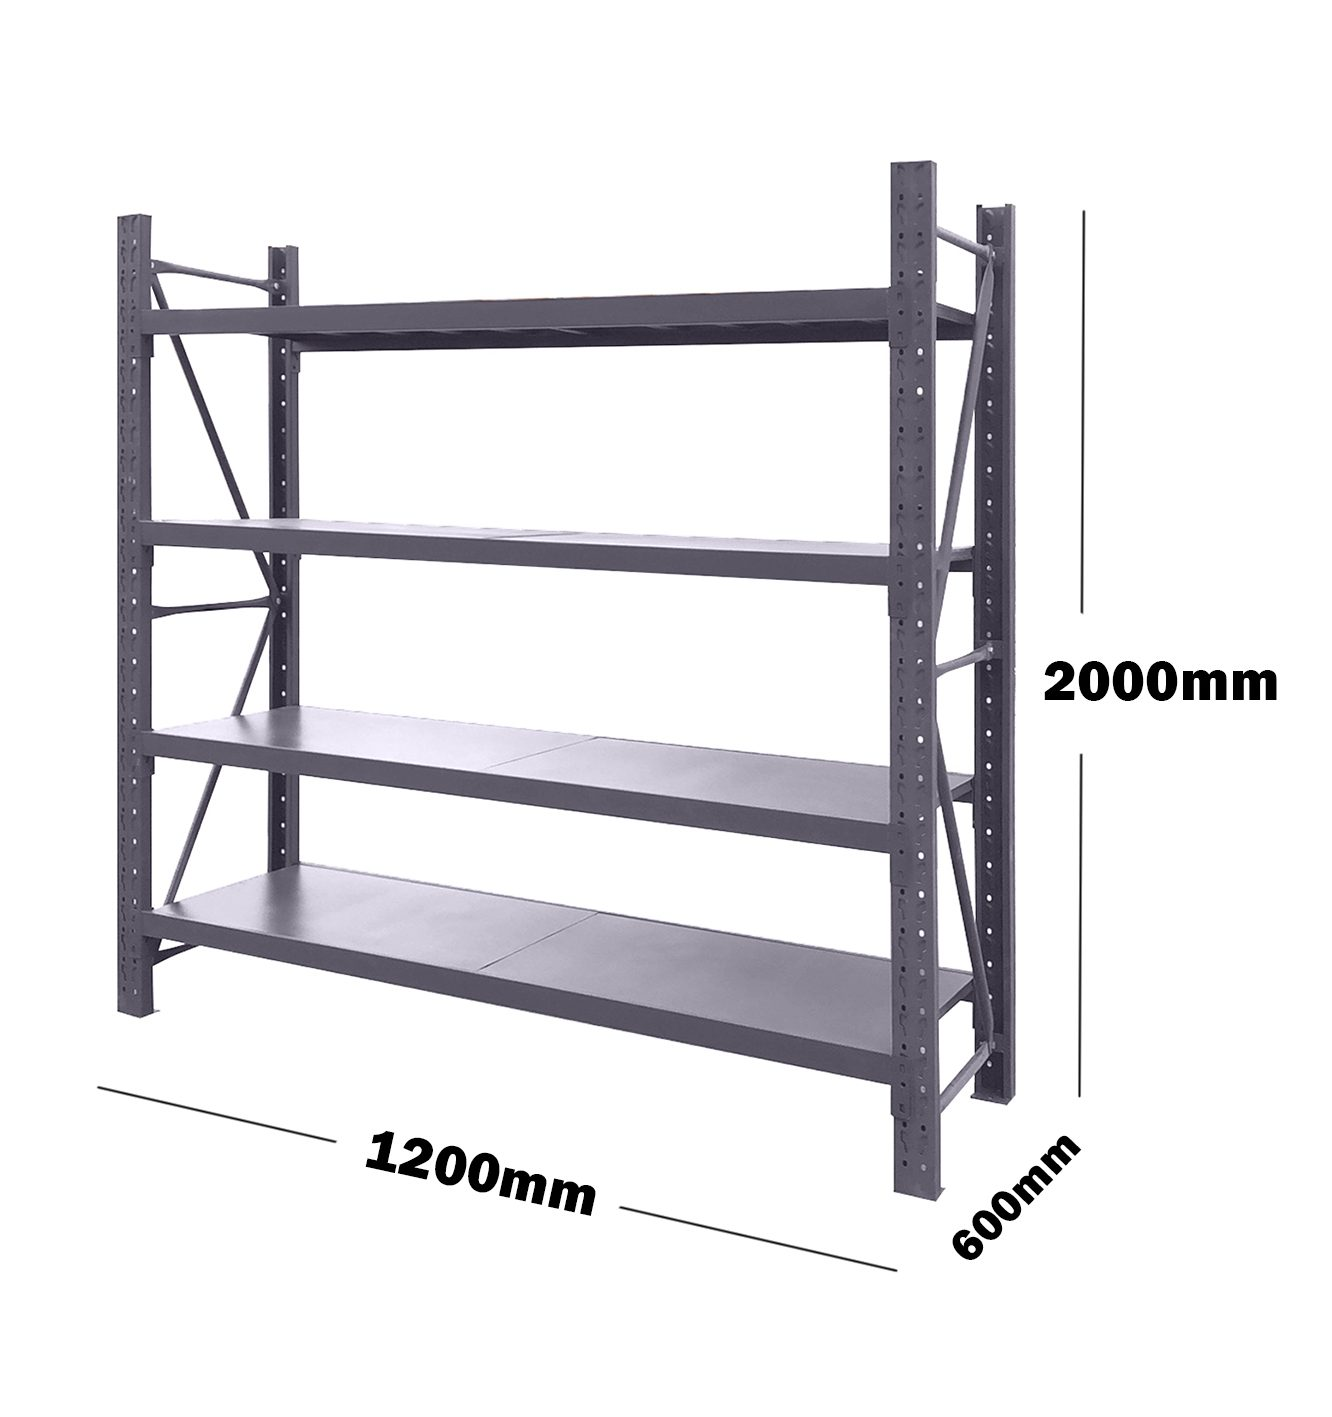 1.2M(L) x 2M(H) x 0.6M(D) Shelves Racking Metal Steel Charcoal 1220C